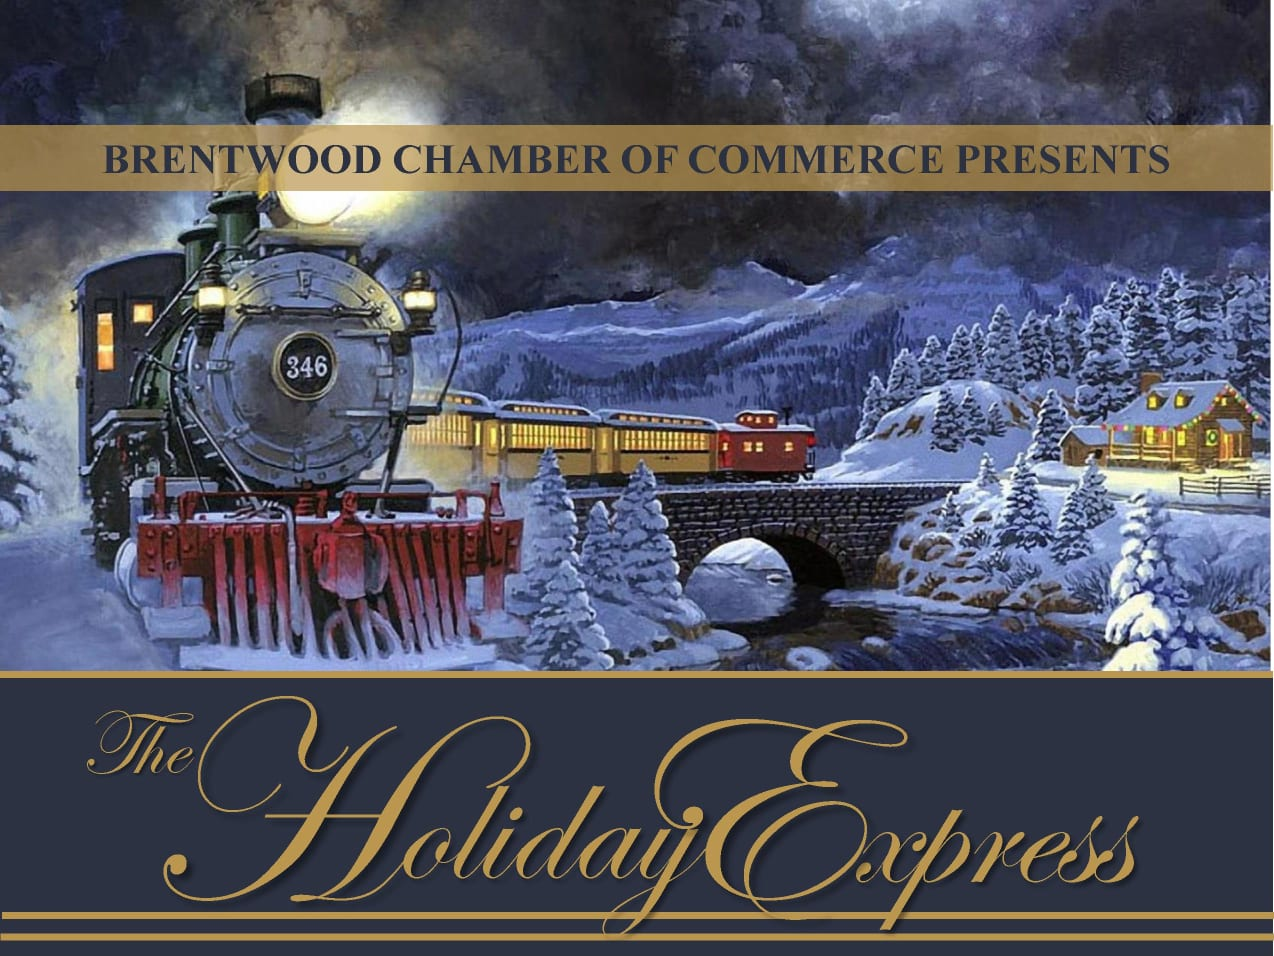 The Brentwood Chamber of Commerce Presents The Holiday Express